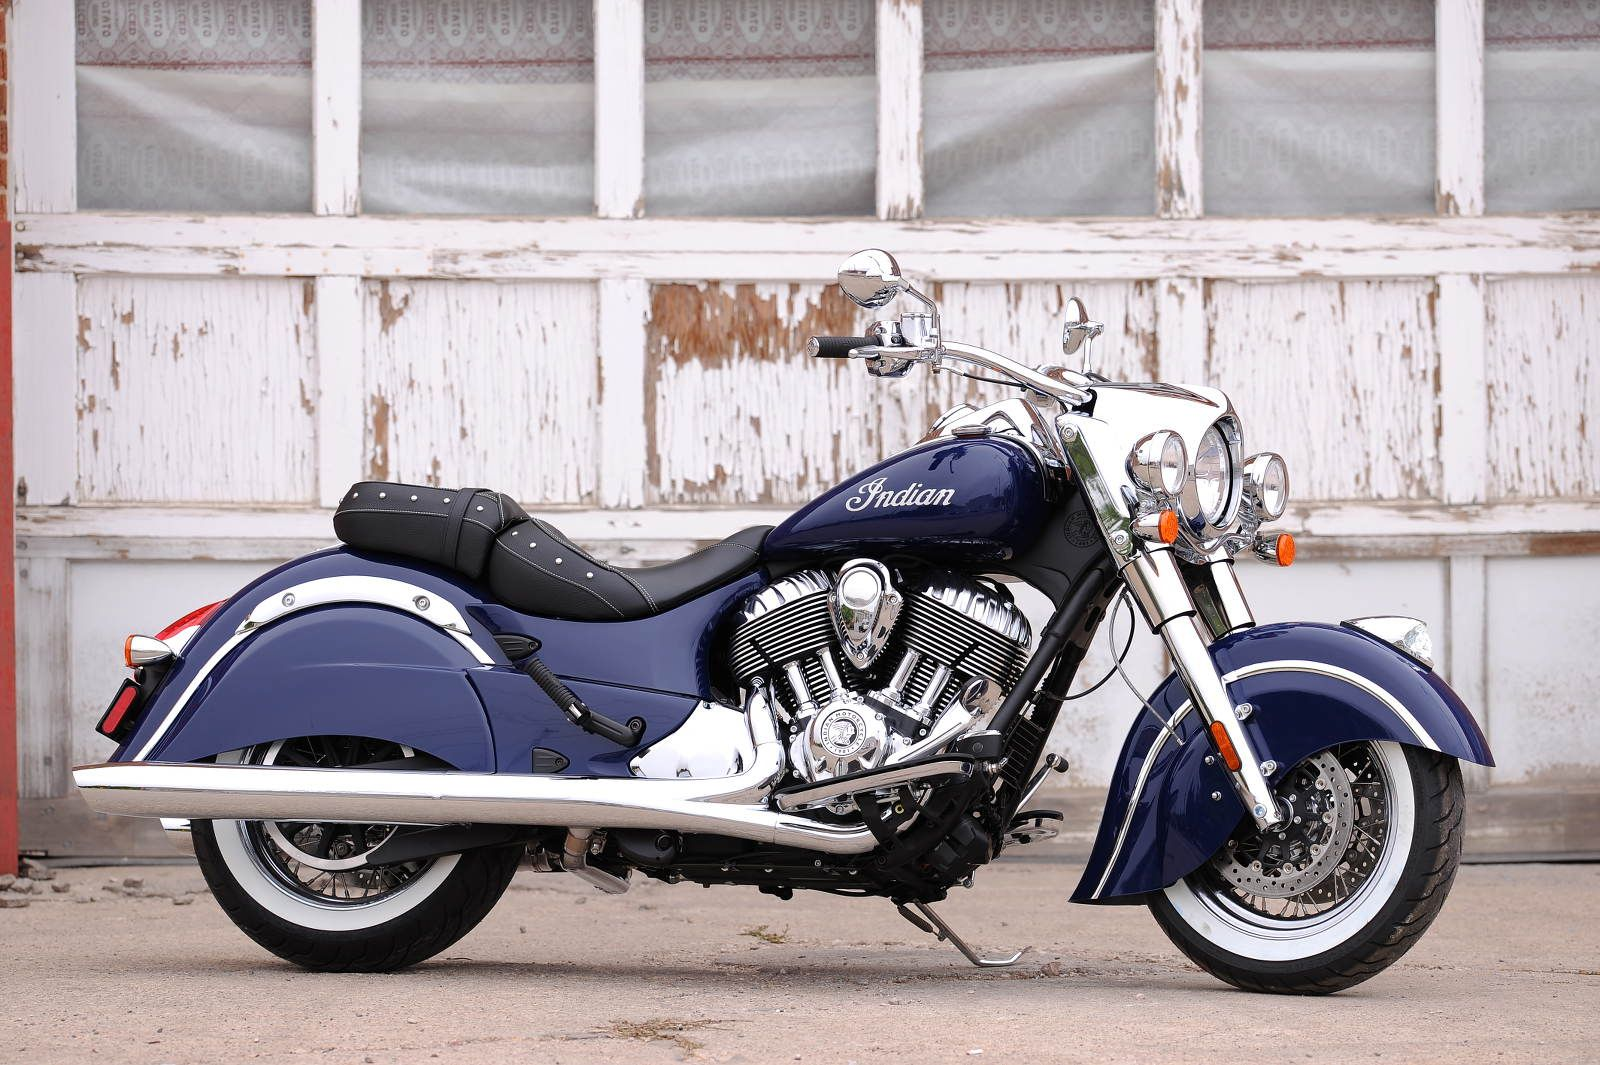 Meet indian motorcycles first model of 2016 indian chief dark - 2014 Indian Chief Classic Cocoa Gold Stardust Custom Paint 01 Jpeg 5395 2048 1371 Stuff To Buy Pinterest Indian Chief Classic Harley Davidson And